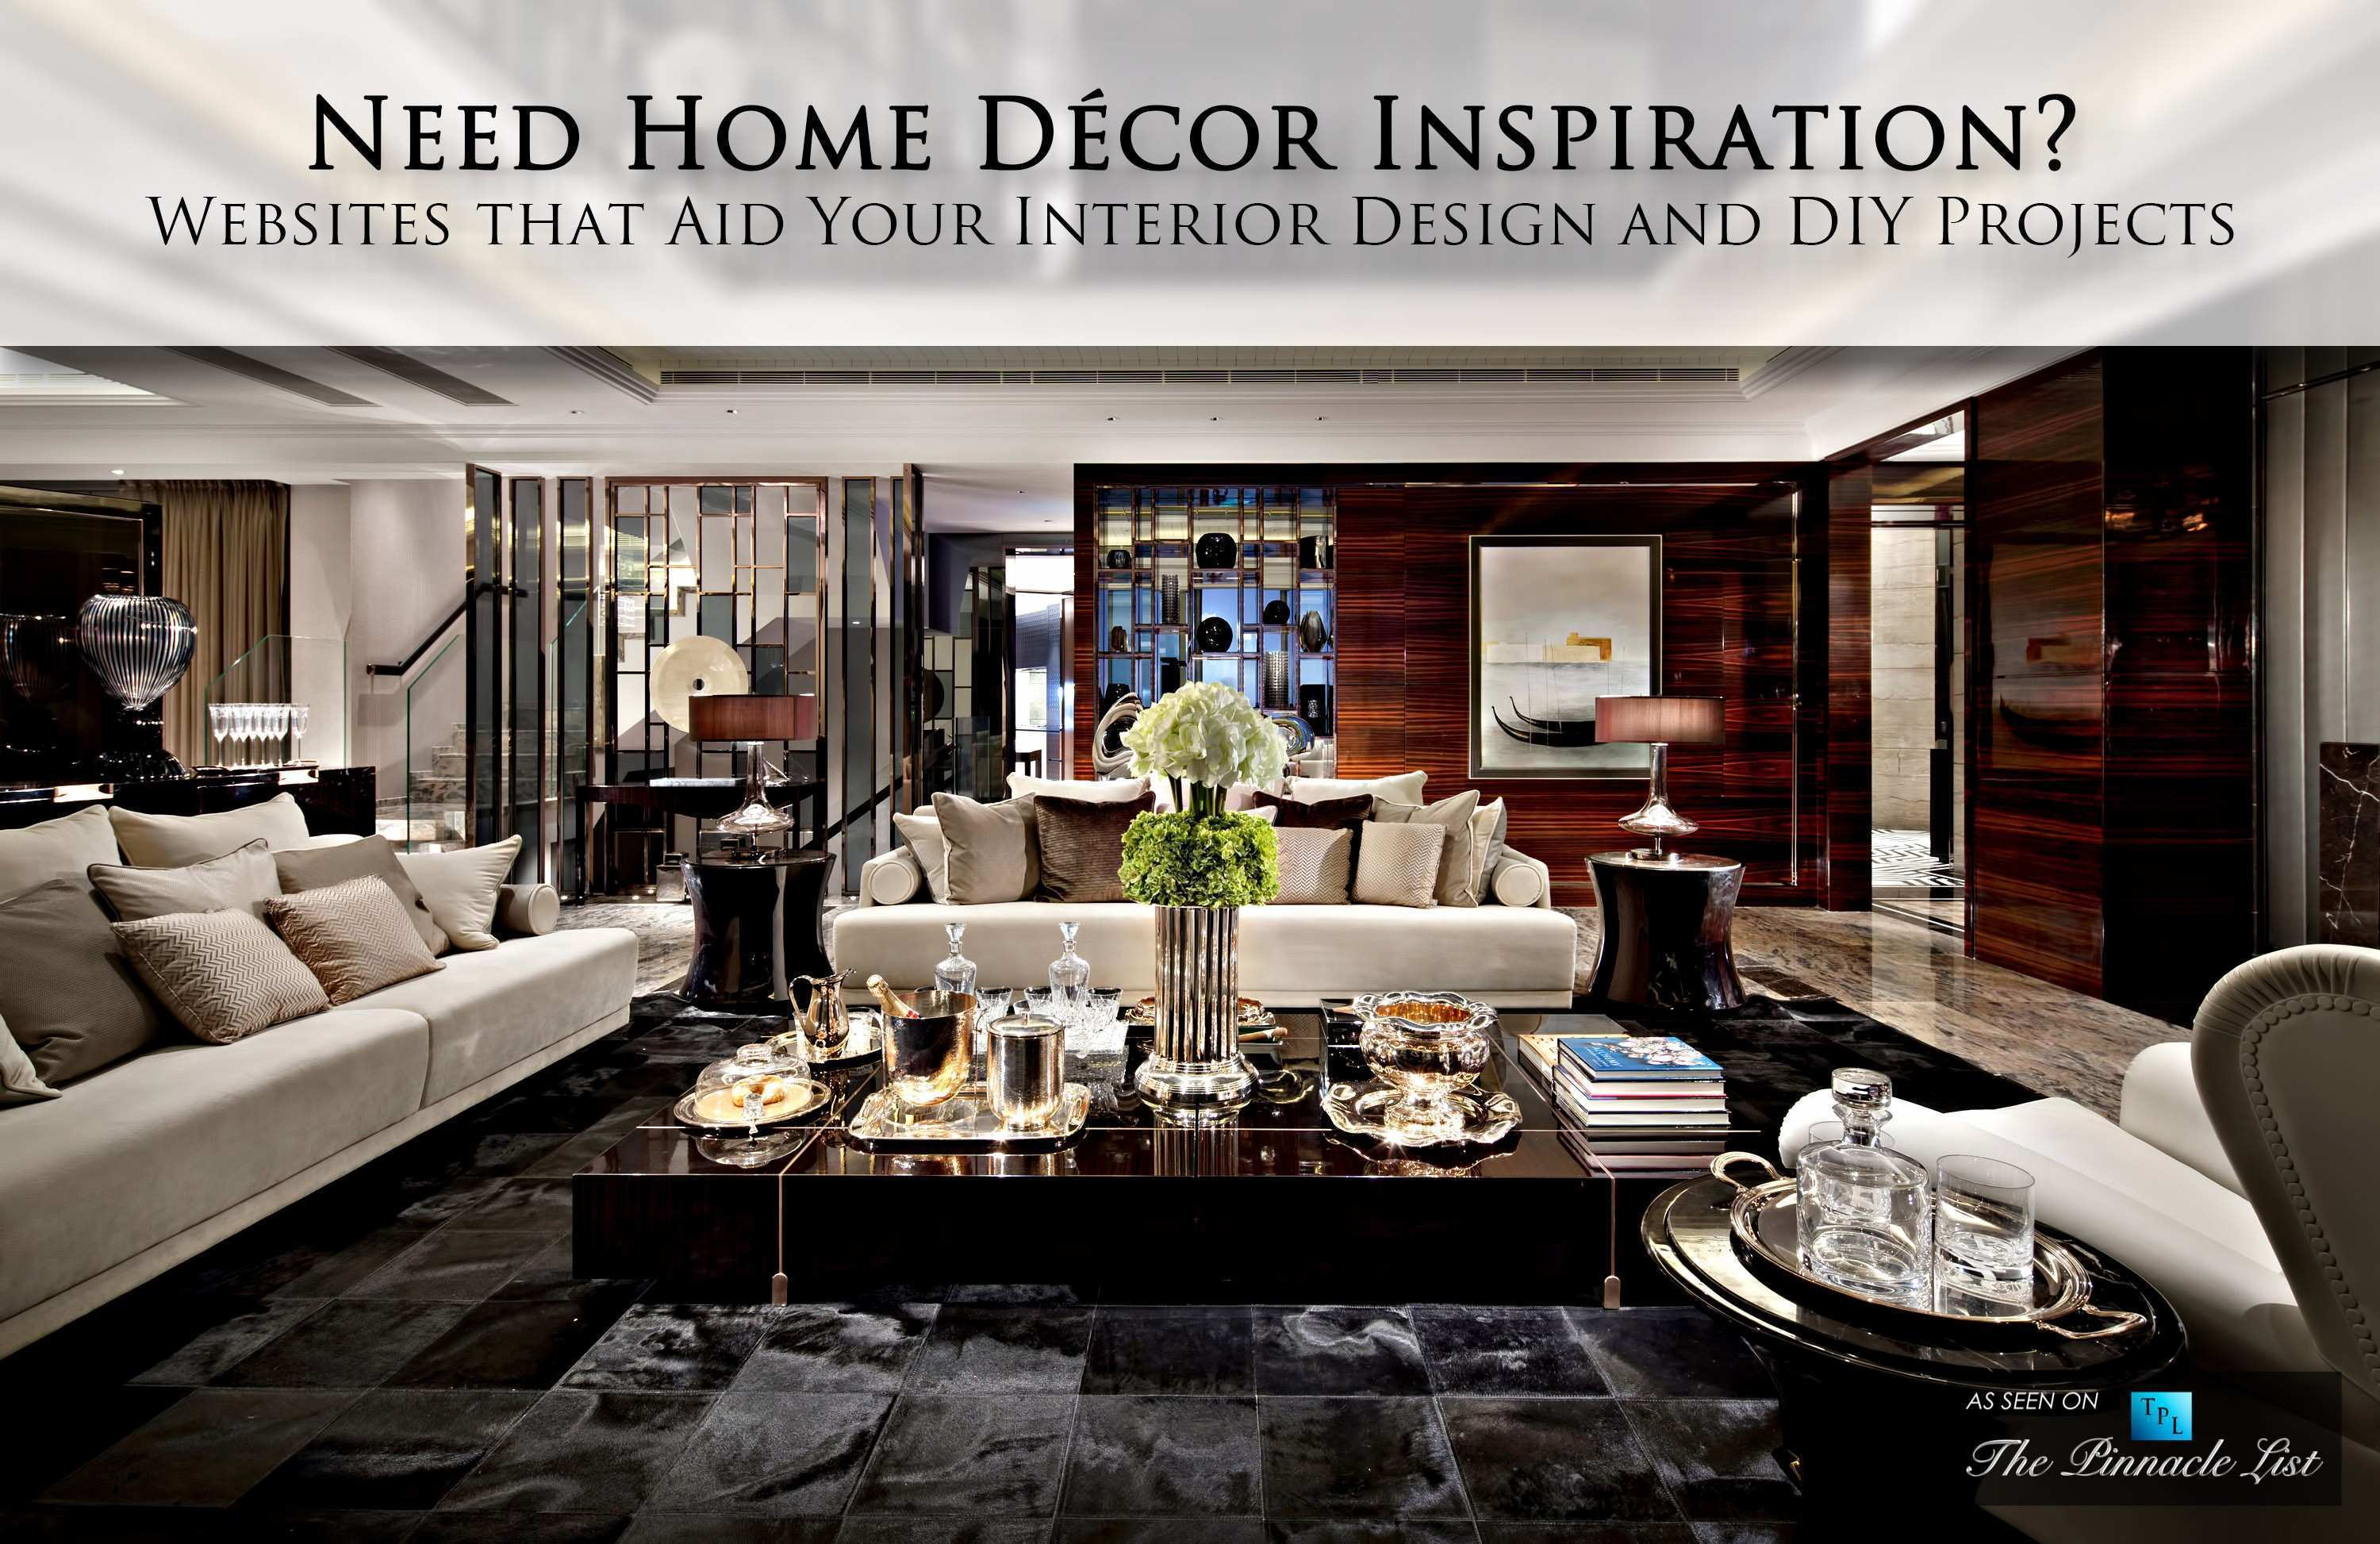 Decorative Best Home Decor Shopping Websites 20 Places To Buy Lovely